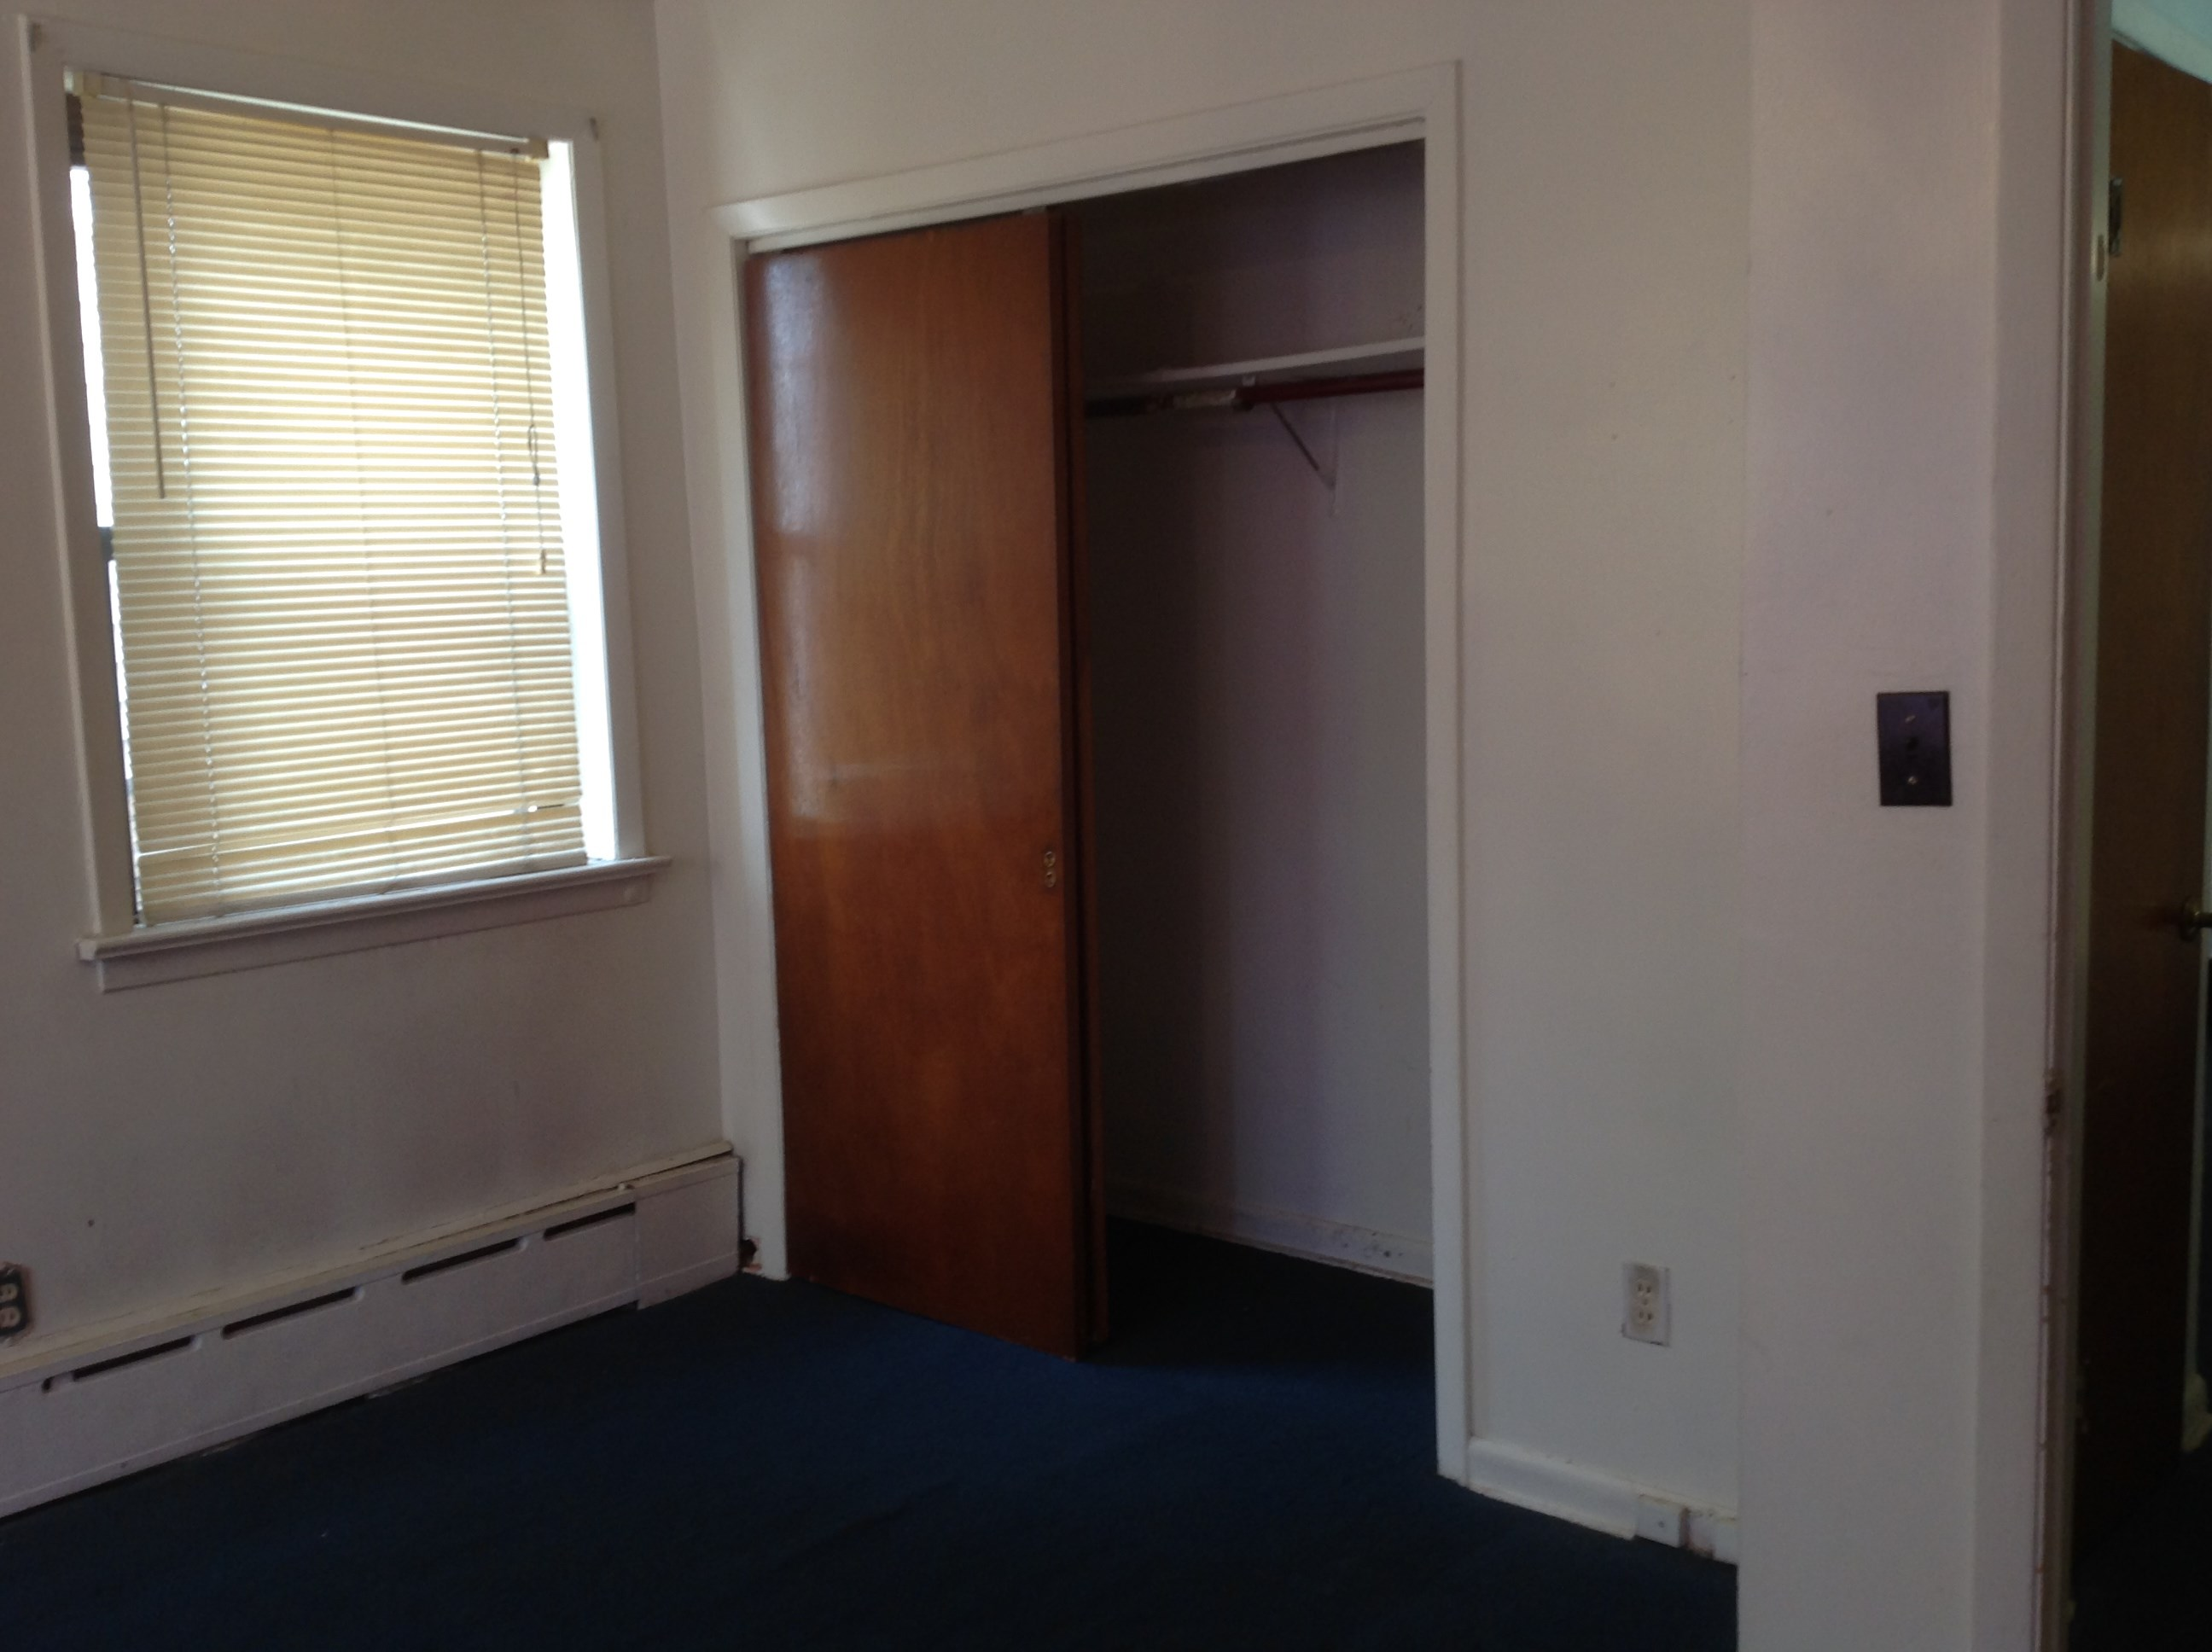 1 Bedroom Apartment In Jersey City Nrys Info